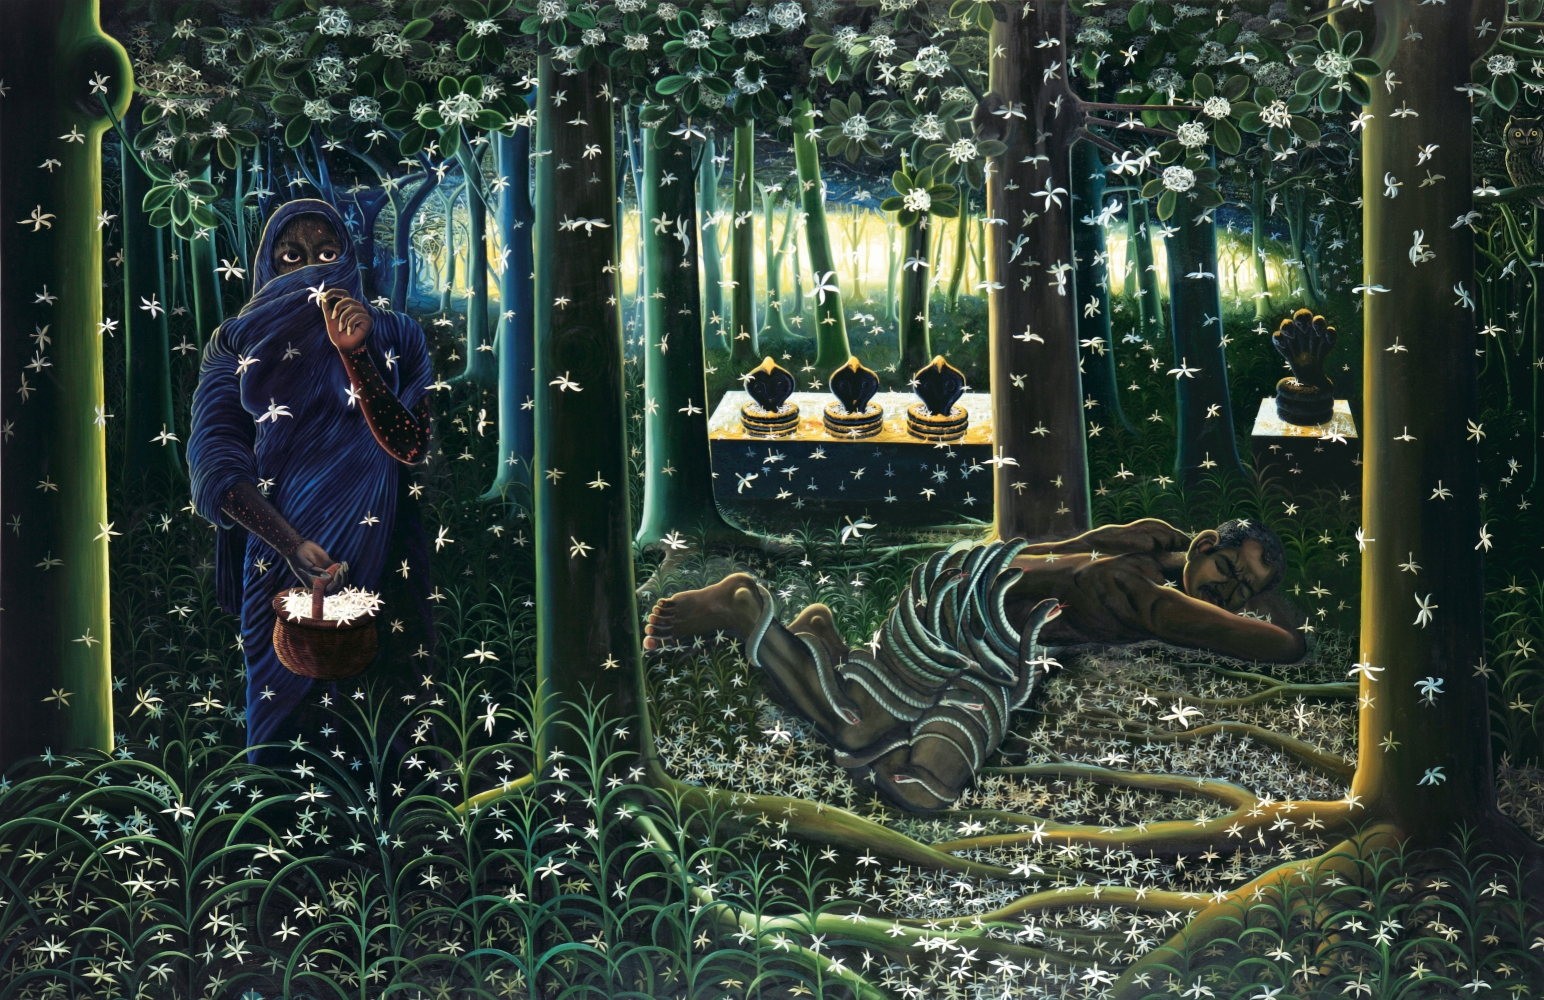 RATHEESH T., Thicket (A Dream), 2007, oil on canvas, 199 x 304 cm / 78.3 x 119.6 in